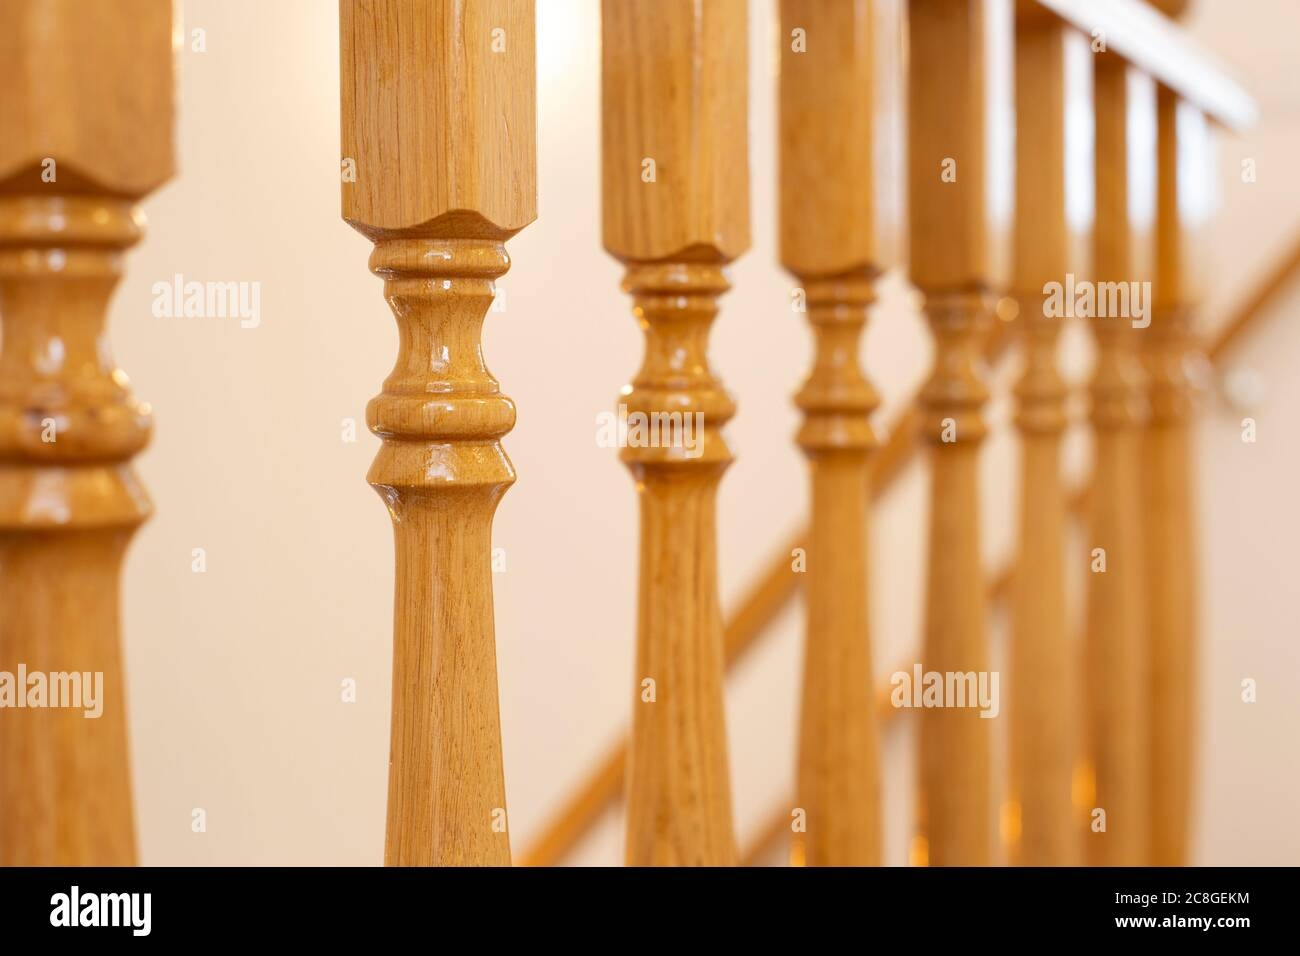 Wooden Railing Of An Luxury Antique Staircase Woodwork Elements   Wooden Railing Designs For Stairs   Handrail   Different Kind Wood   Combination Wood   Interior   Indoor